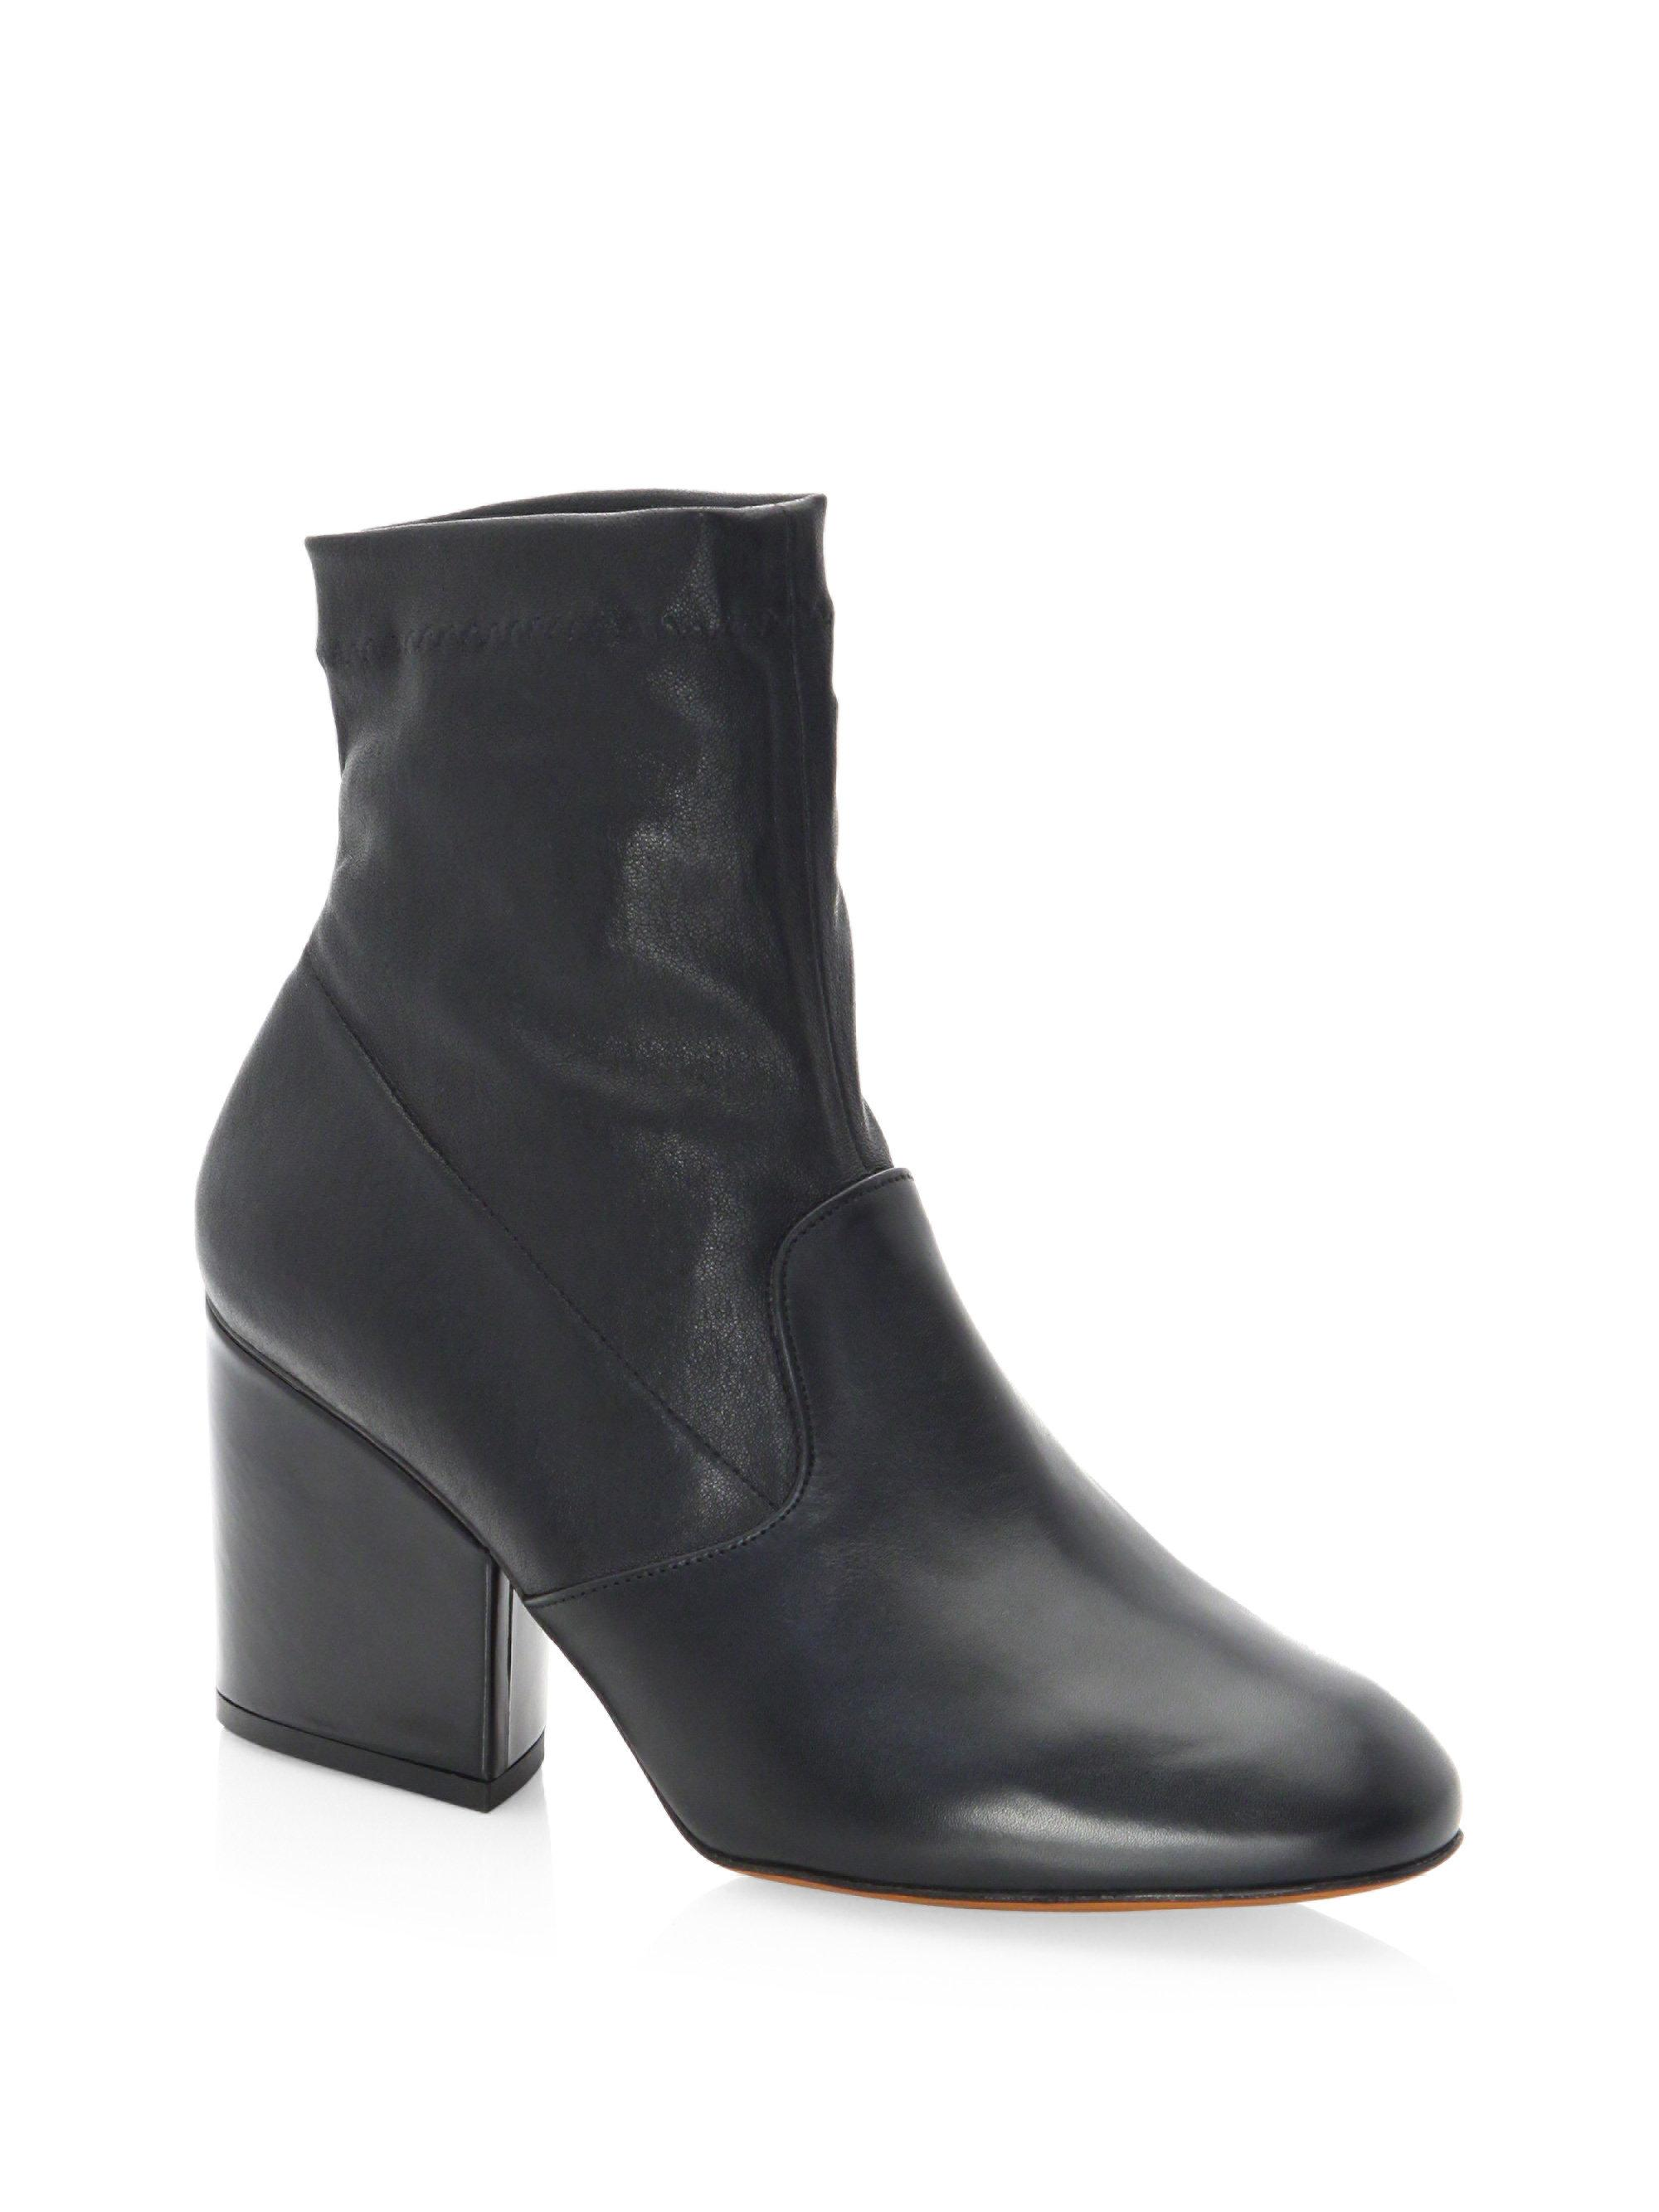 Robert Clergerie Stretch Tear Leather Booties 6Cqka01